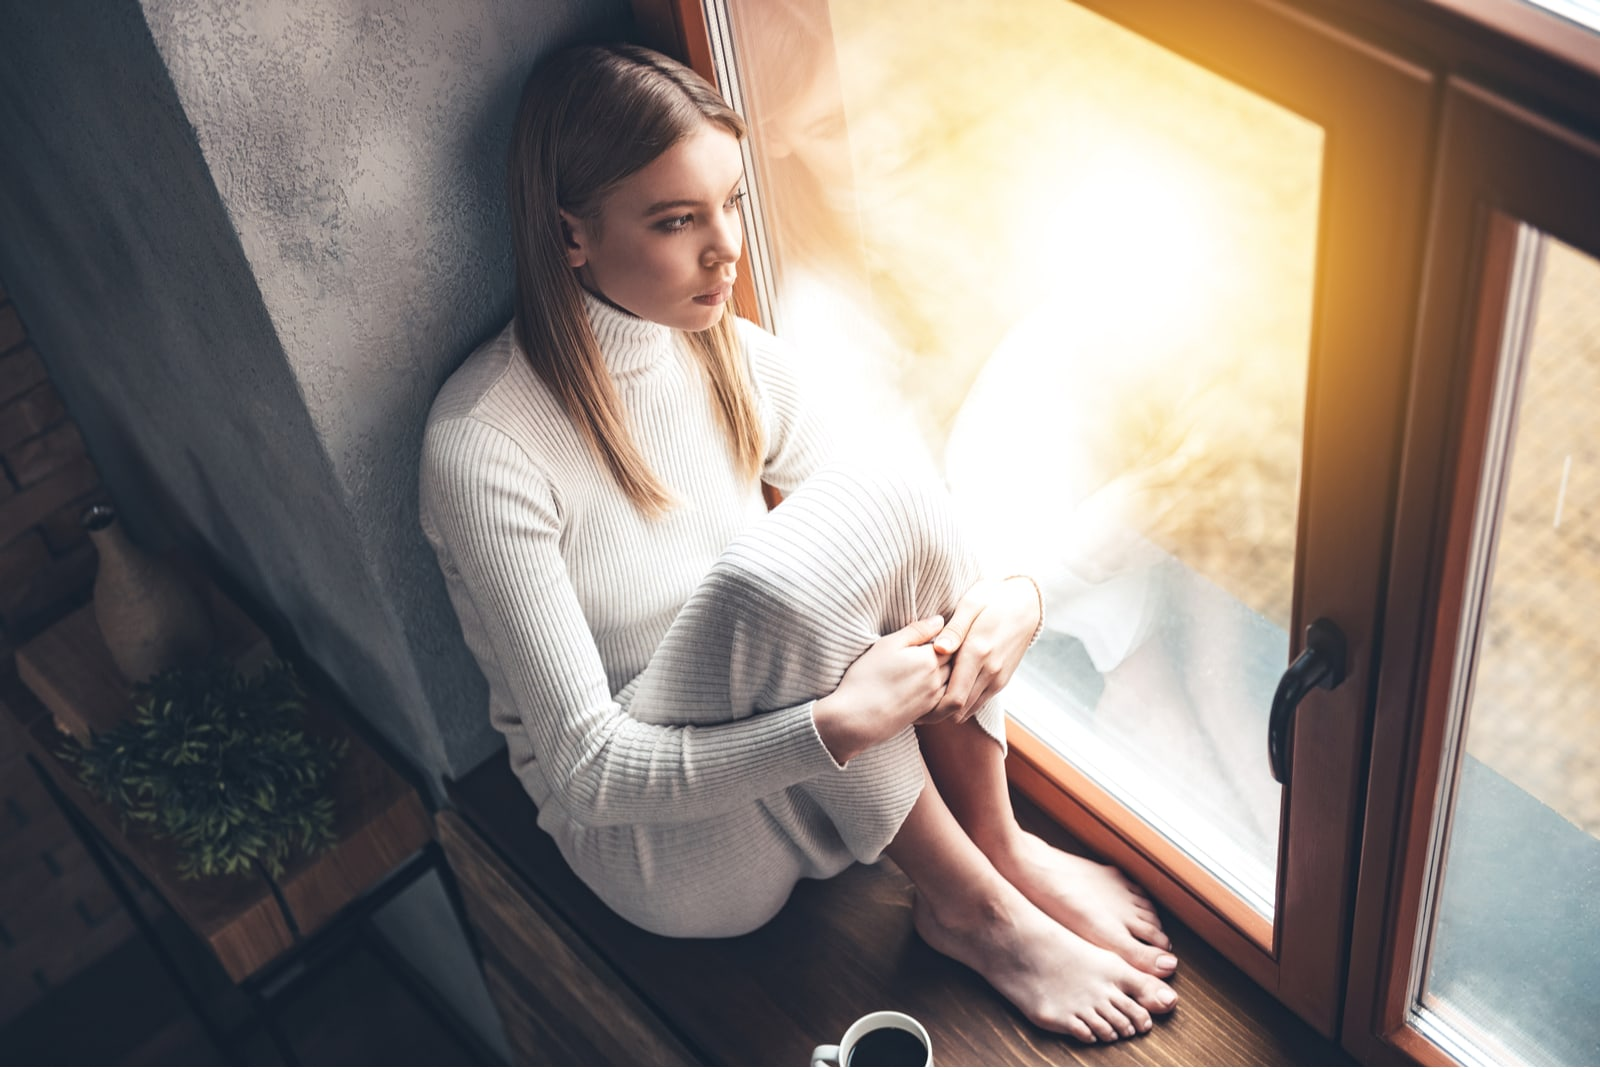 a woman with long brown hair sits by the window and drinks coffee